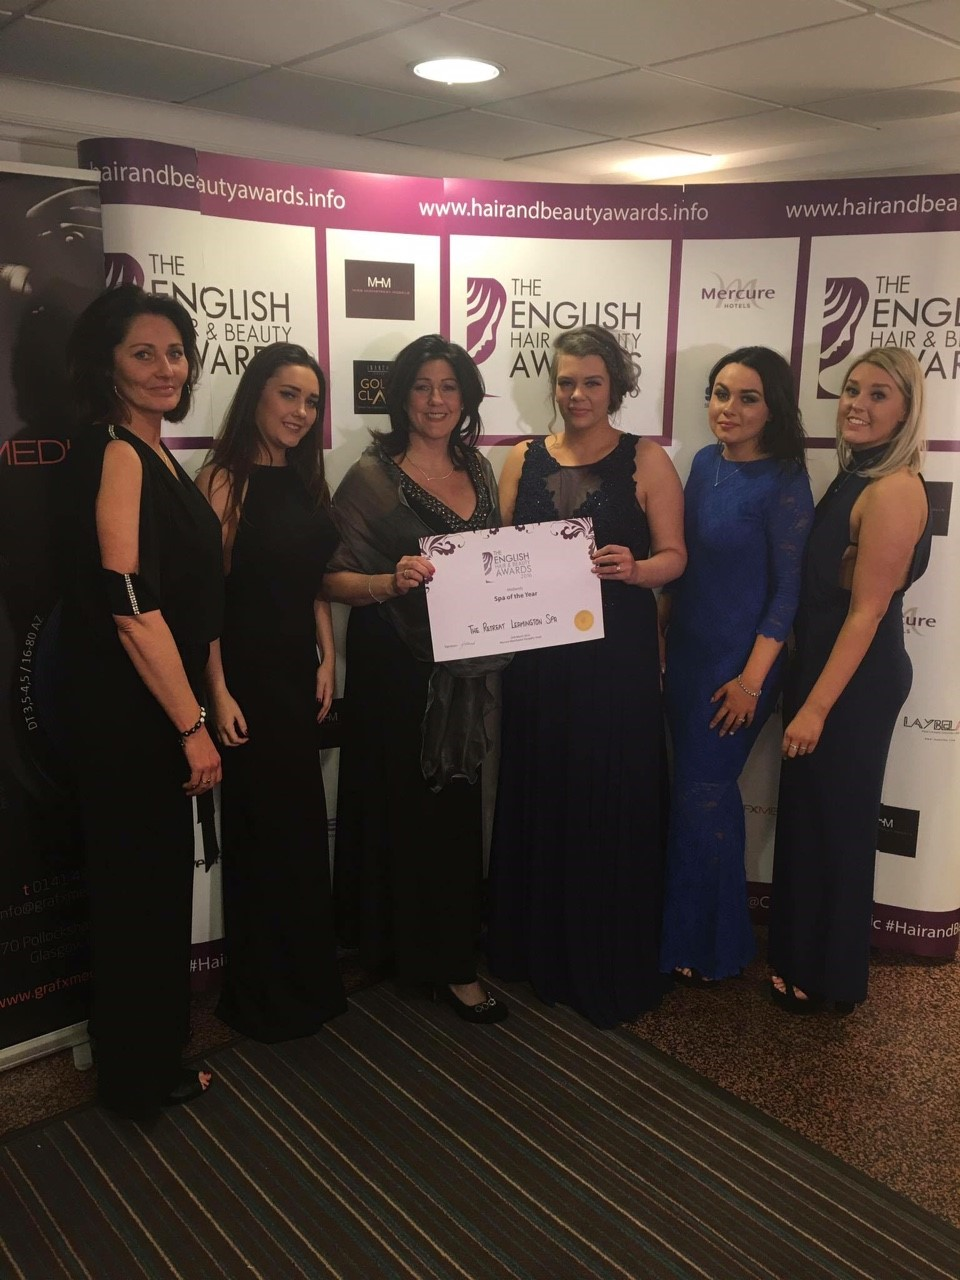 Carol Thomas, Beth Parnell, Hazel Twite (owner), Tracie Dyer (owner), Rebecca Twite, Chrissie Thompson